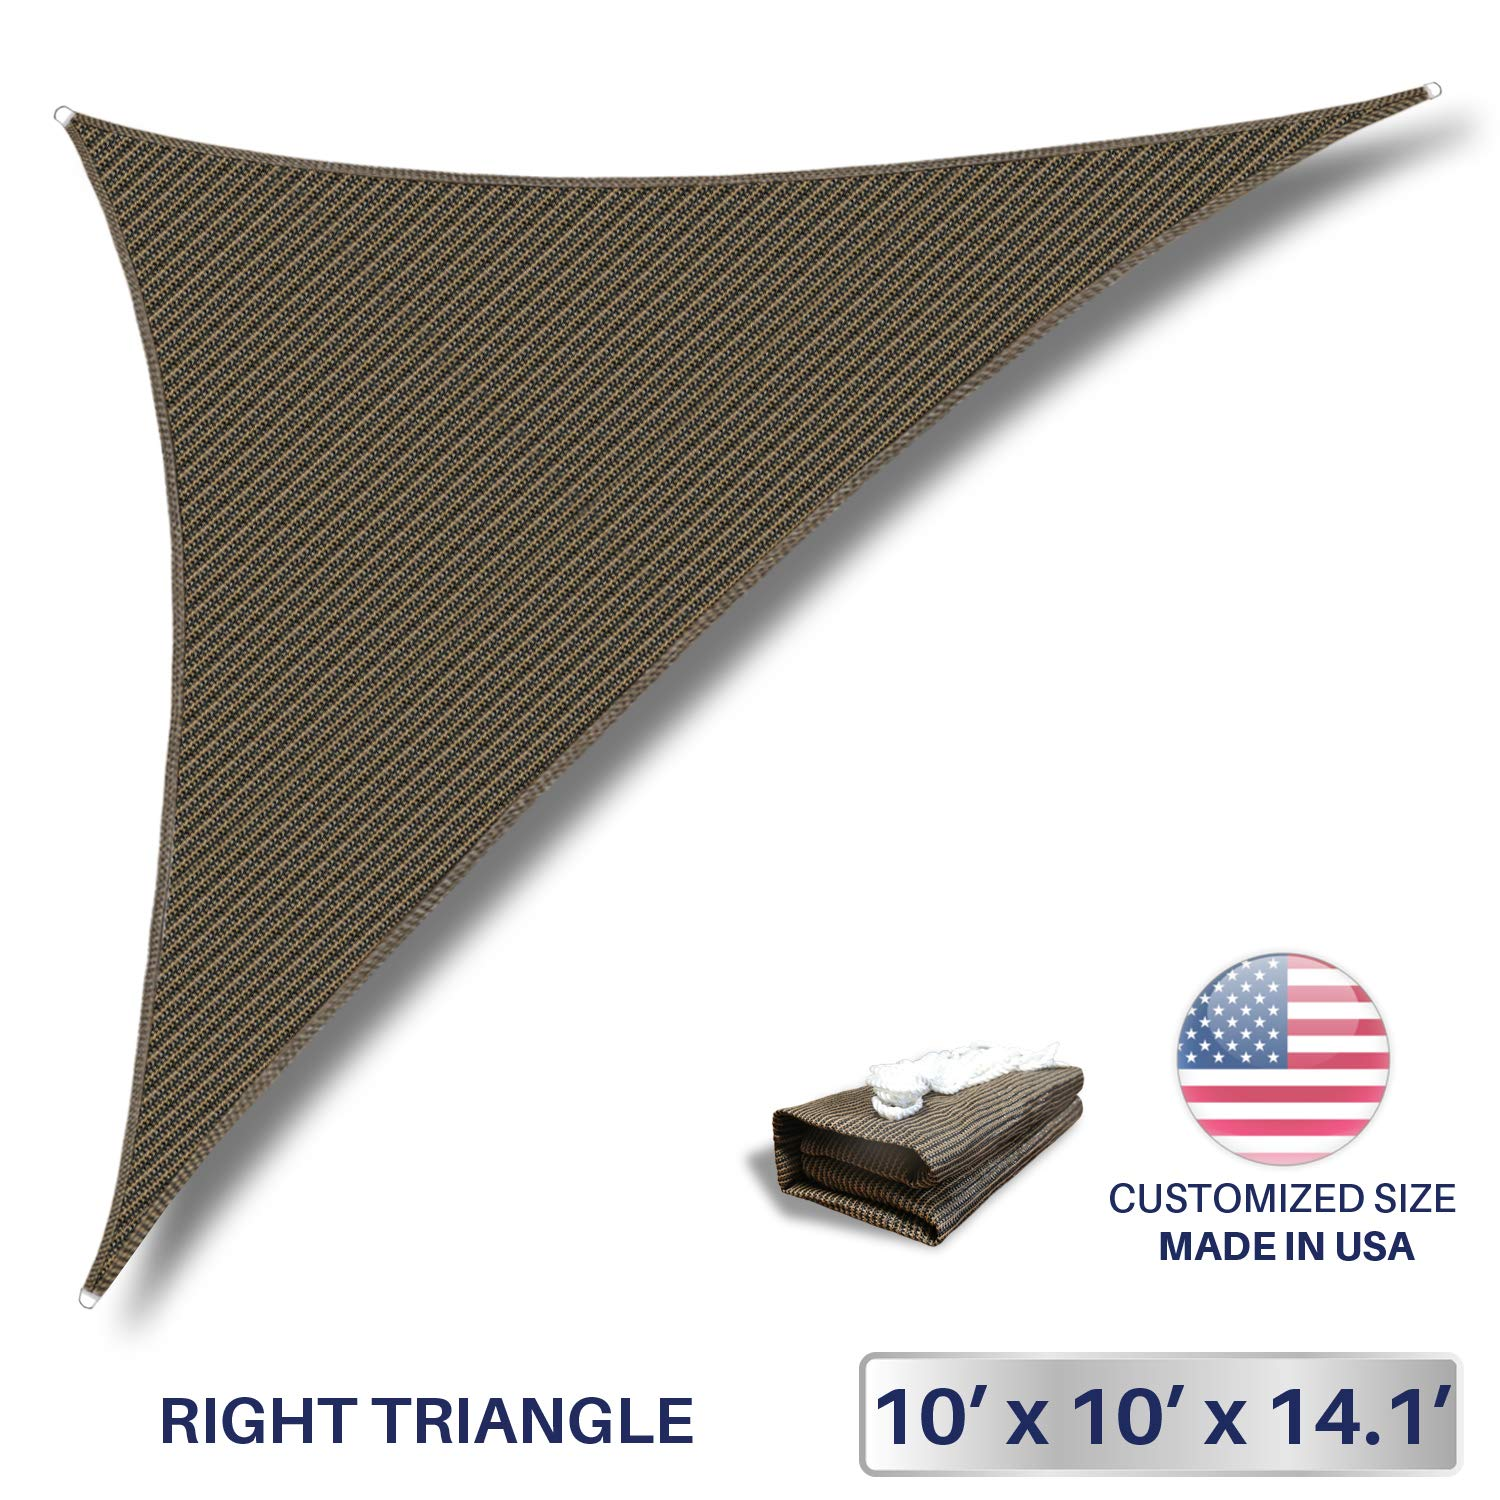 Windscreen4less 10' x 10' x 14.1' Sunshade Sail Triangle Canopy in Brown with Commercial Grade (3 Year Warranty) Customized